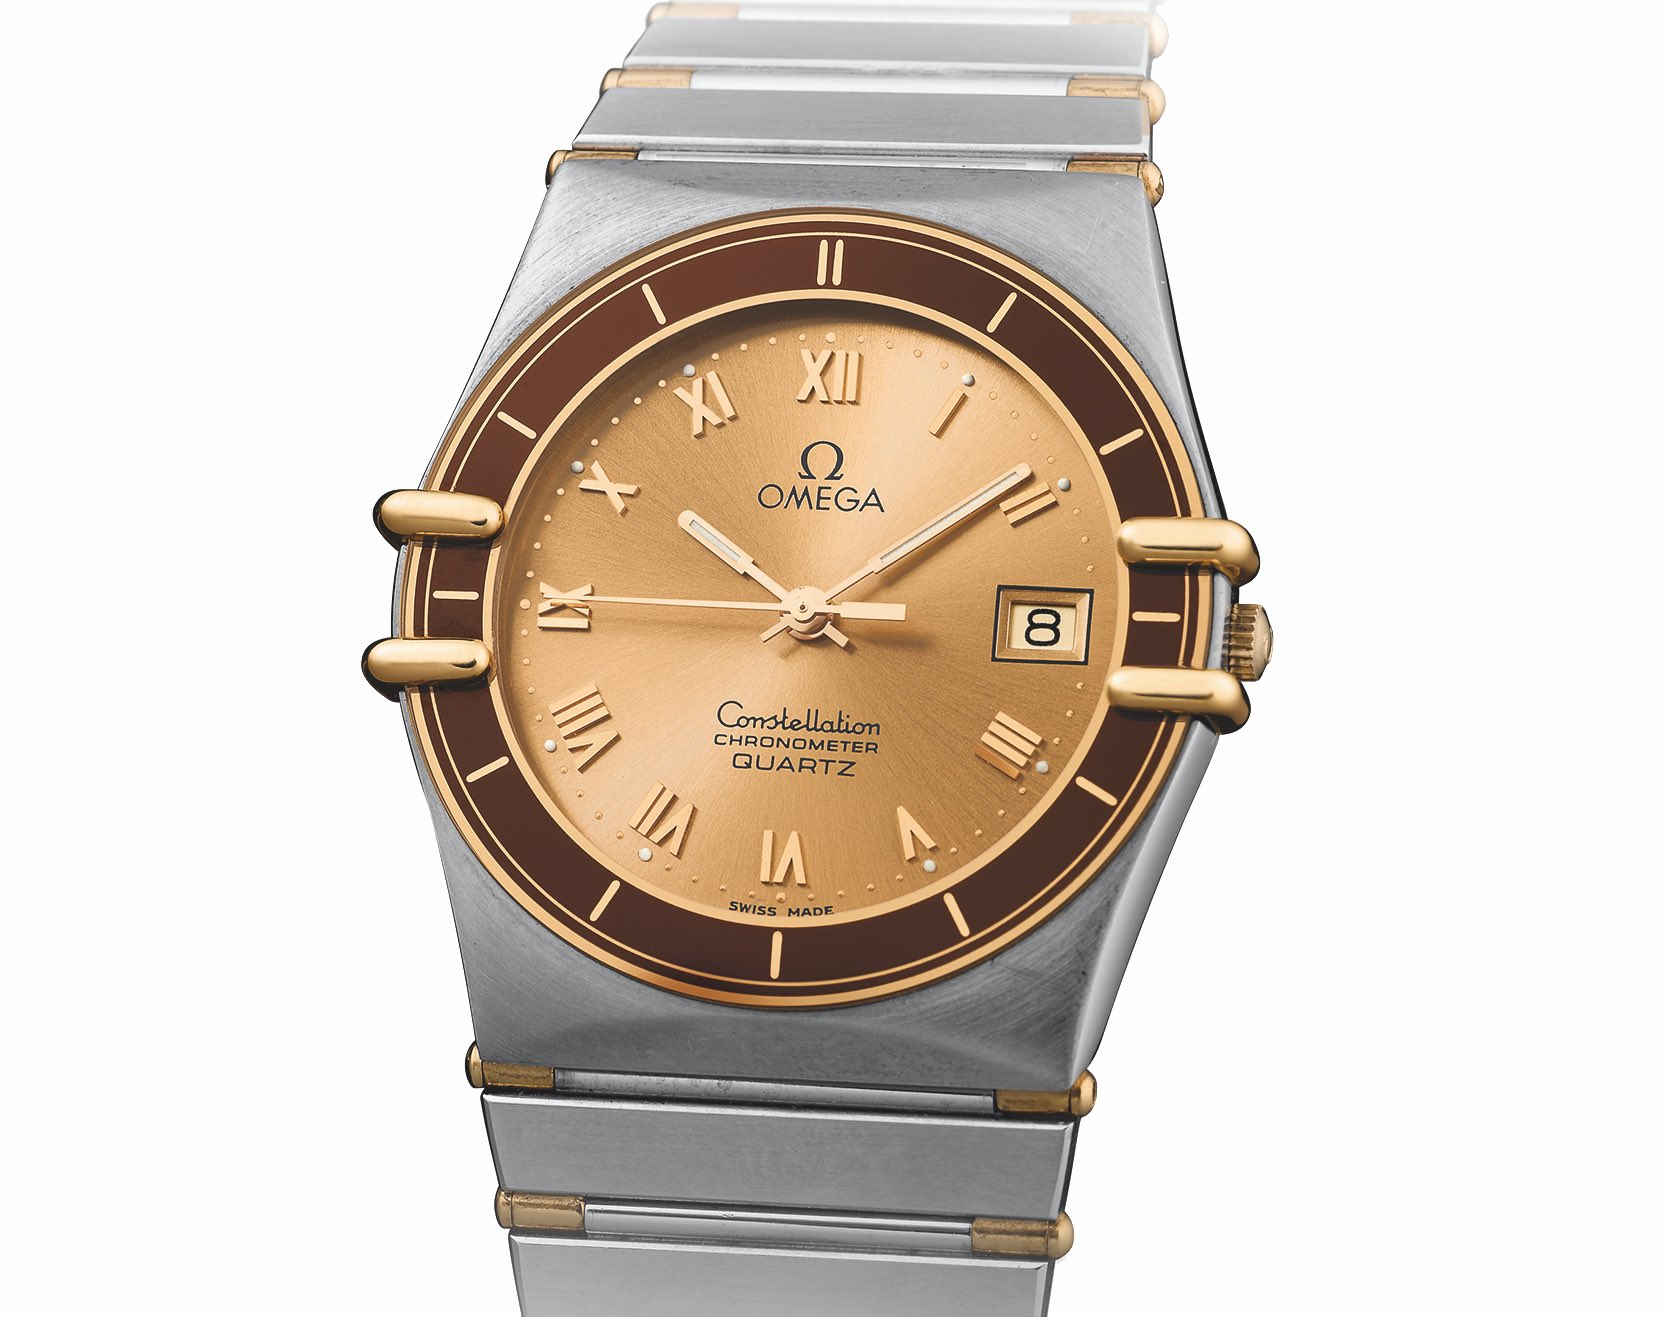 The 1982 Omega Constellation Manhattan